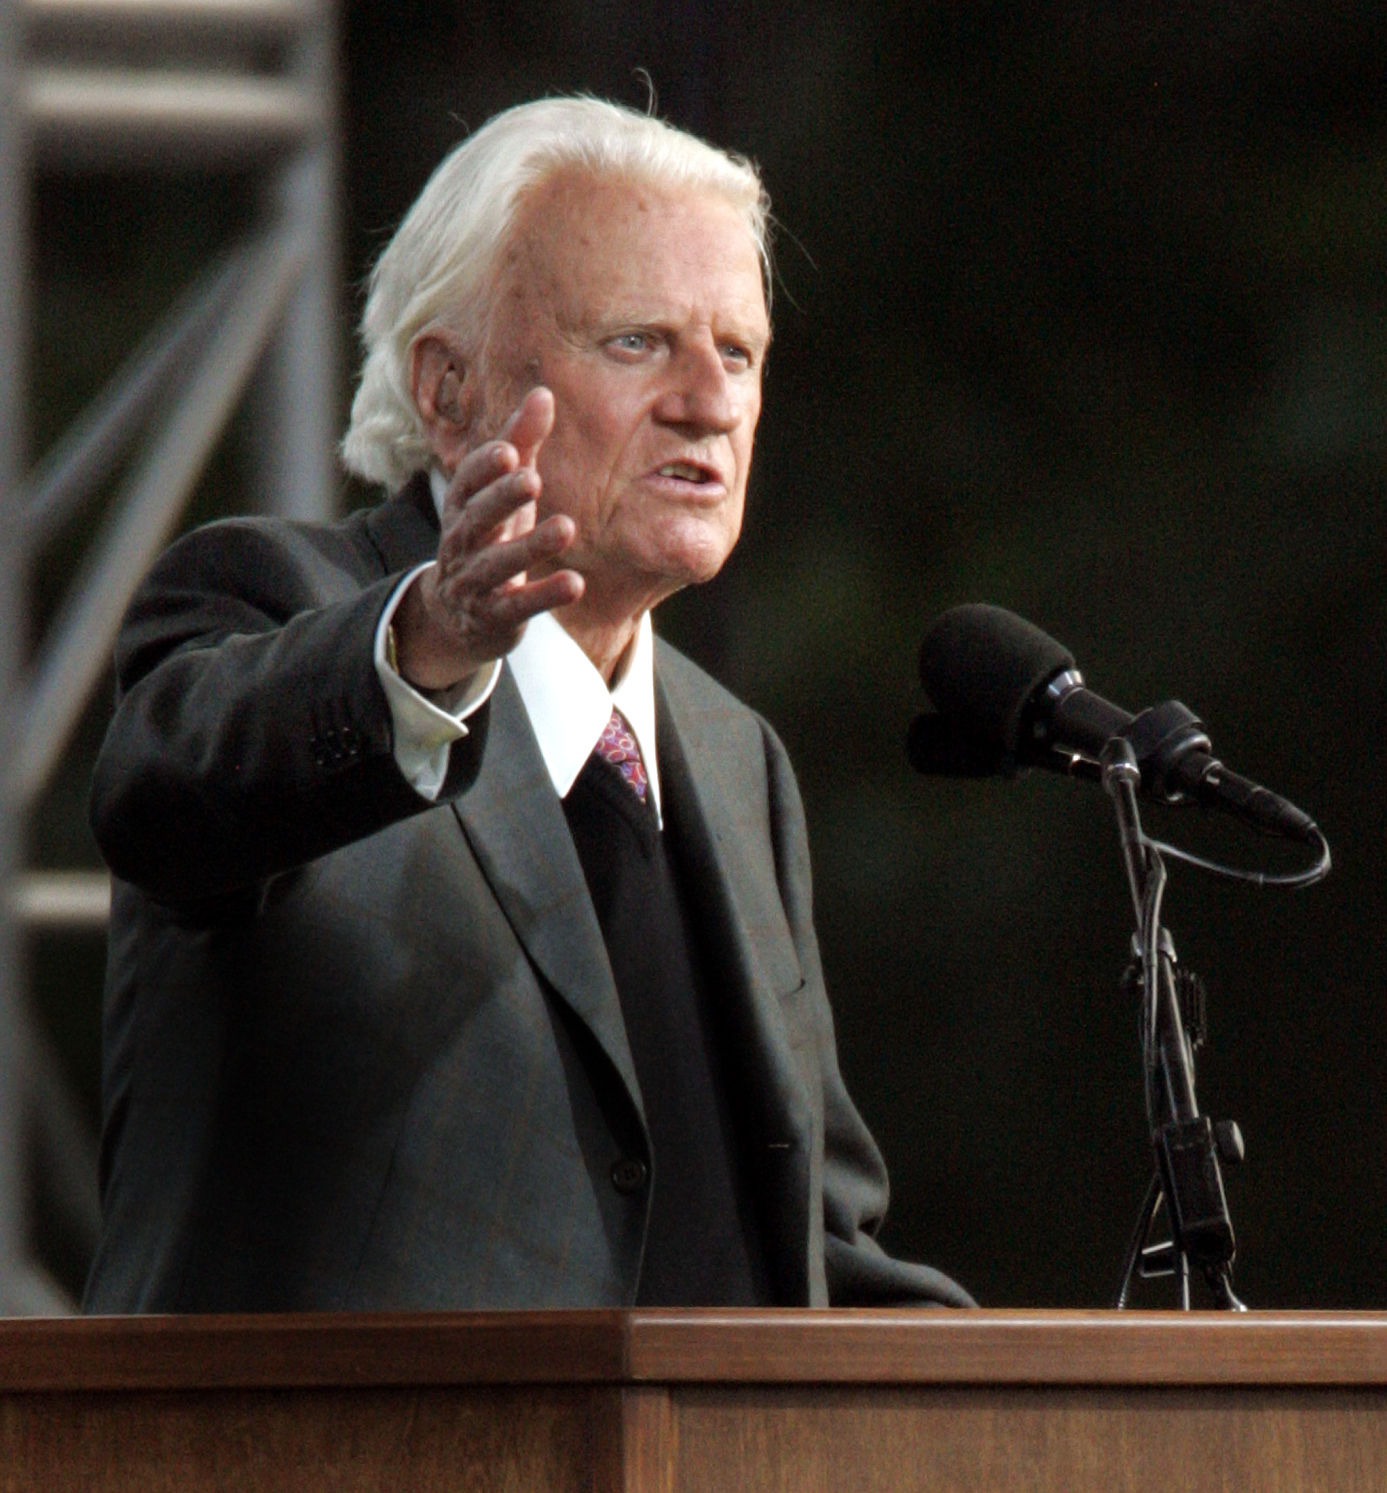 forced to resign resignation letter%0A Evangelist Billy Graham  who reached millions through preaching  activism   dies at      Nation World   theadvocate com